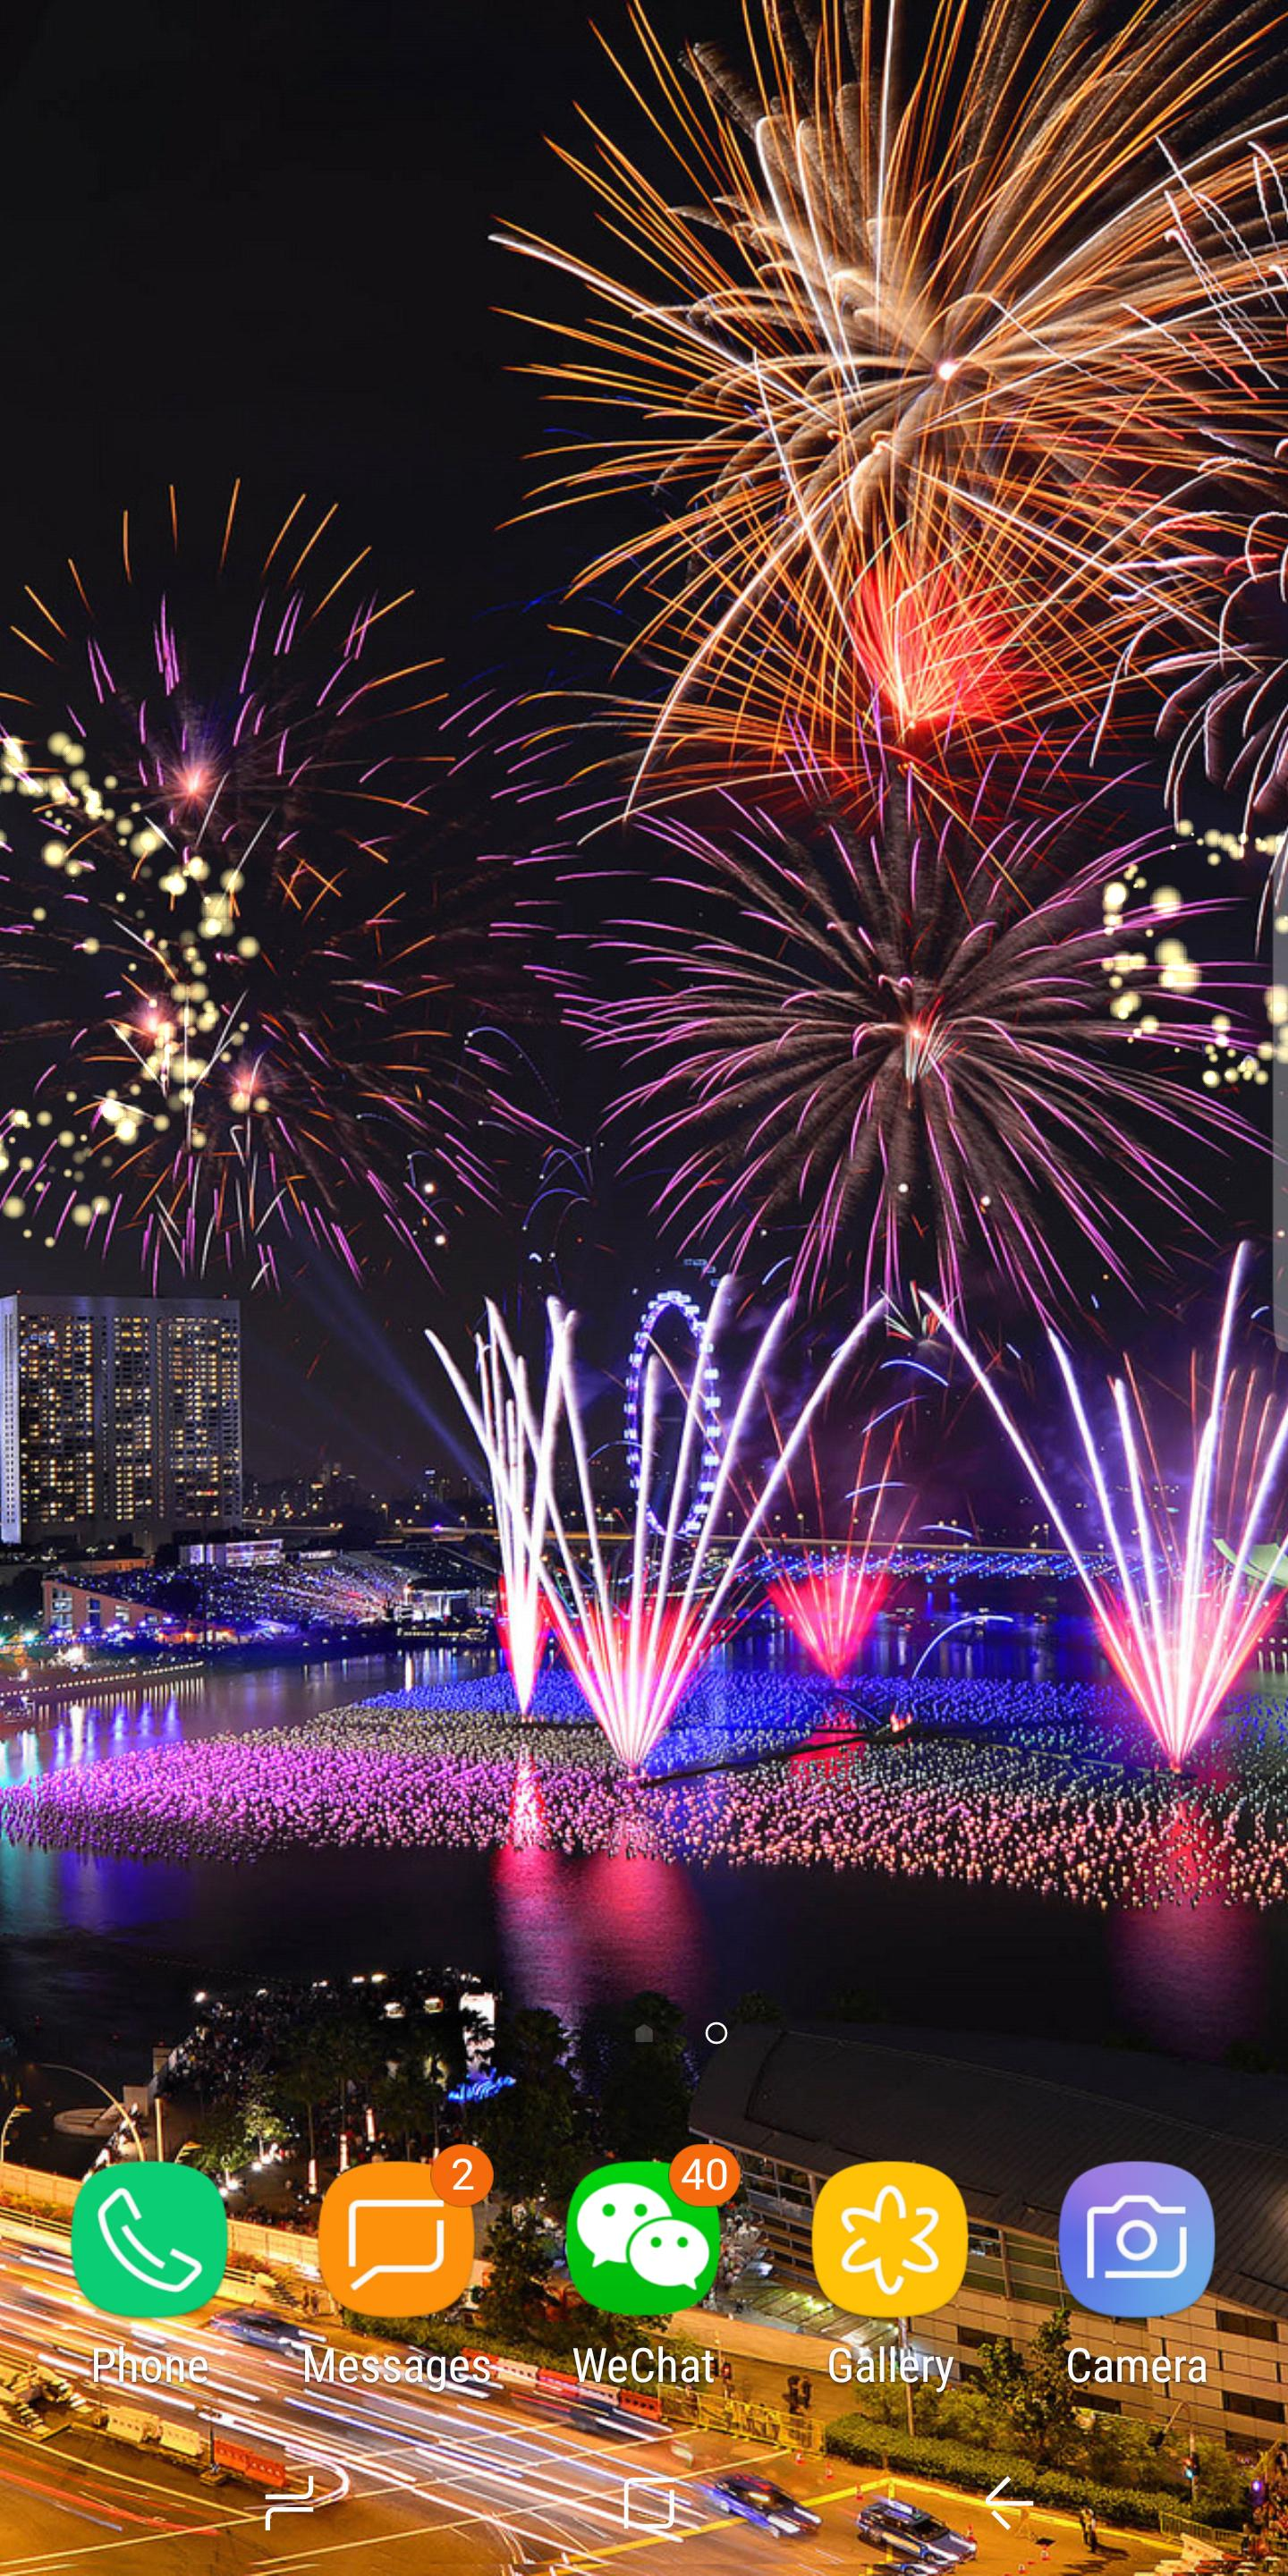 2020 New Year Fireworks Live Wallpaper Free for Android ...